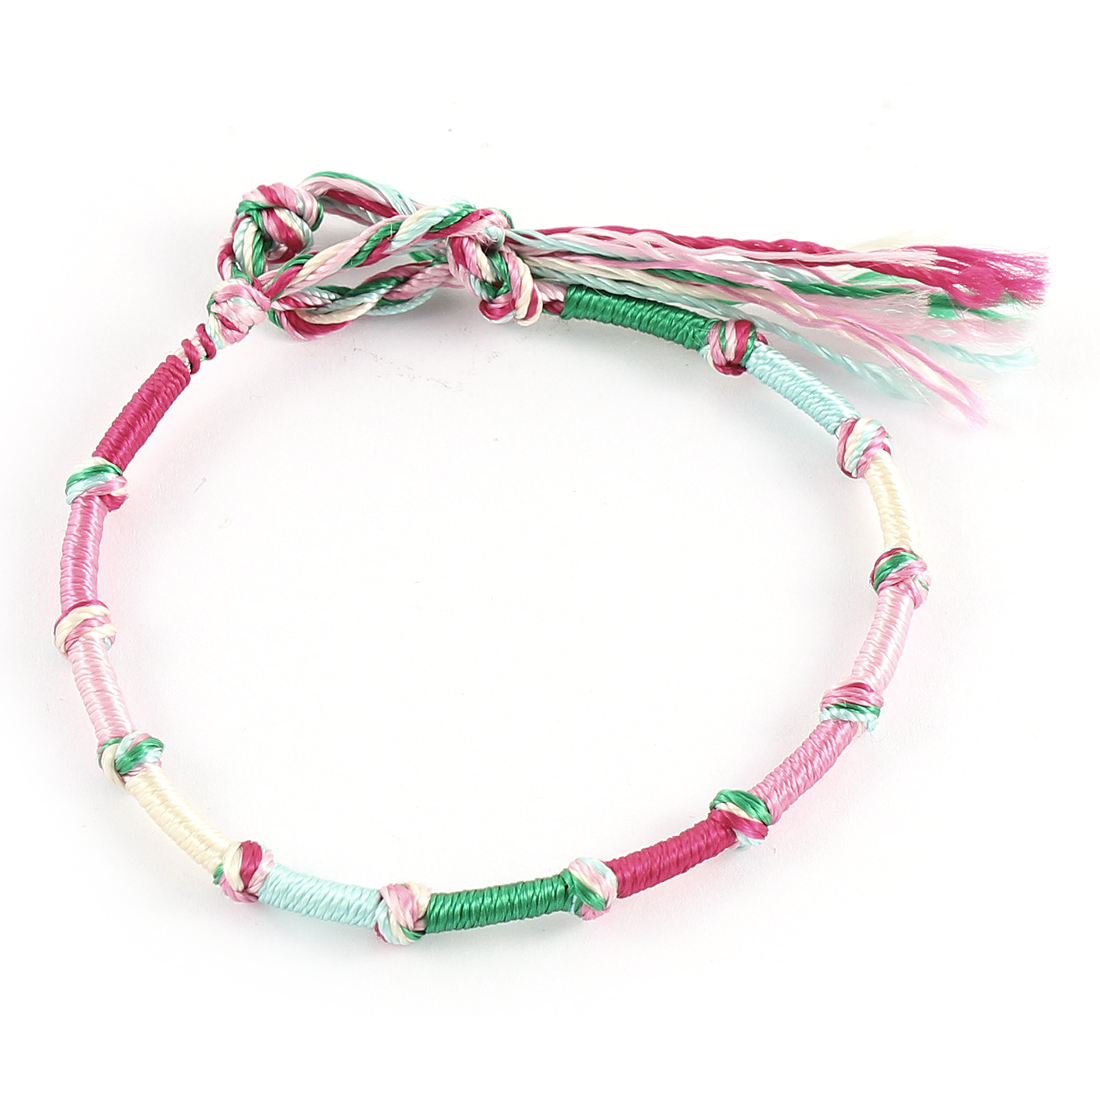 Lady Multicolor Hand Braided Ties of Love Nylon Charm Wrist Bracelet